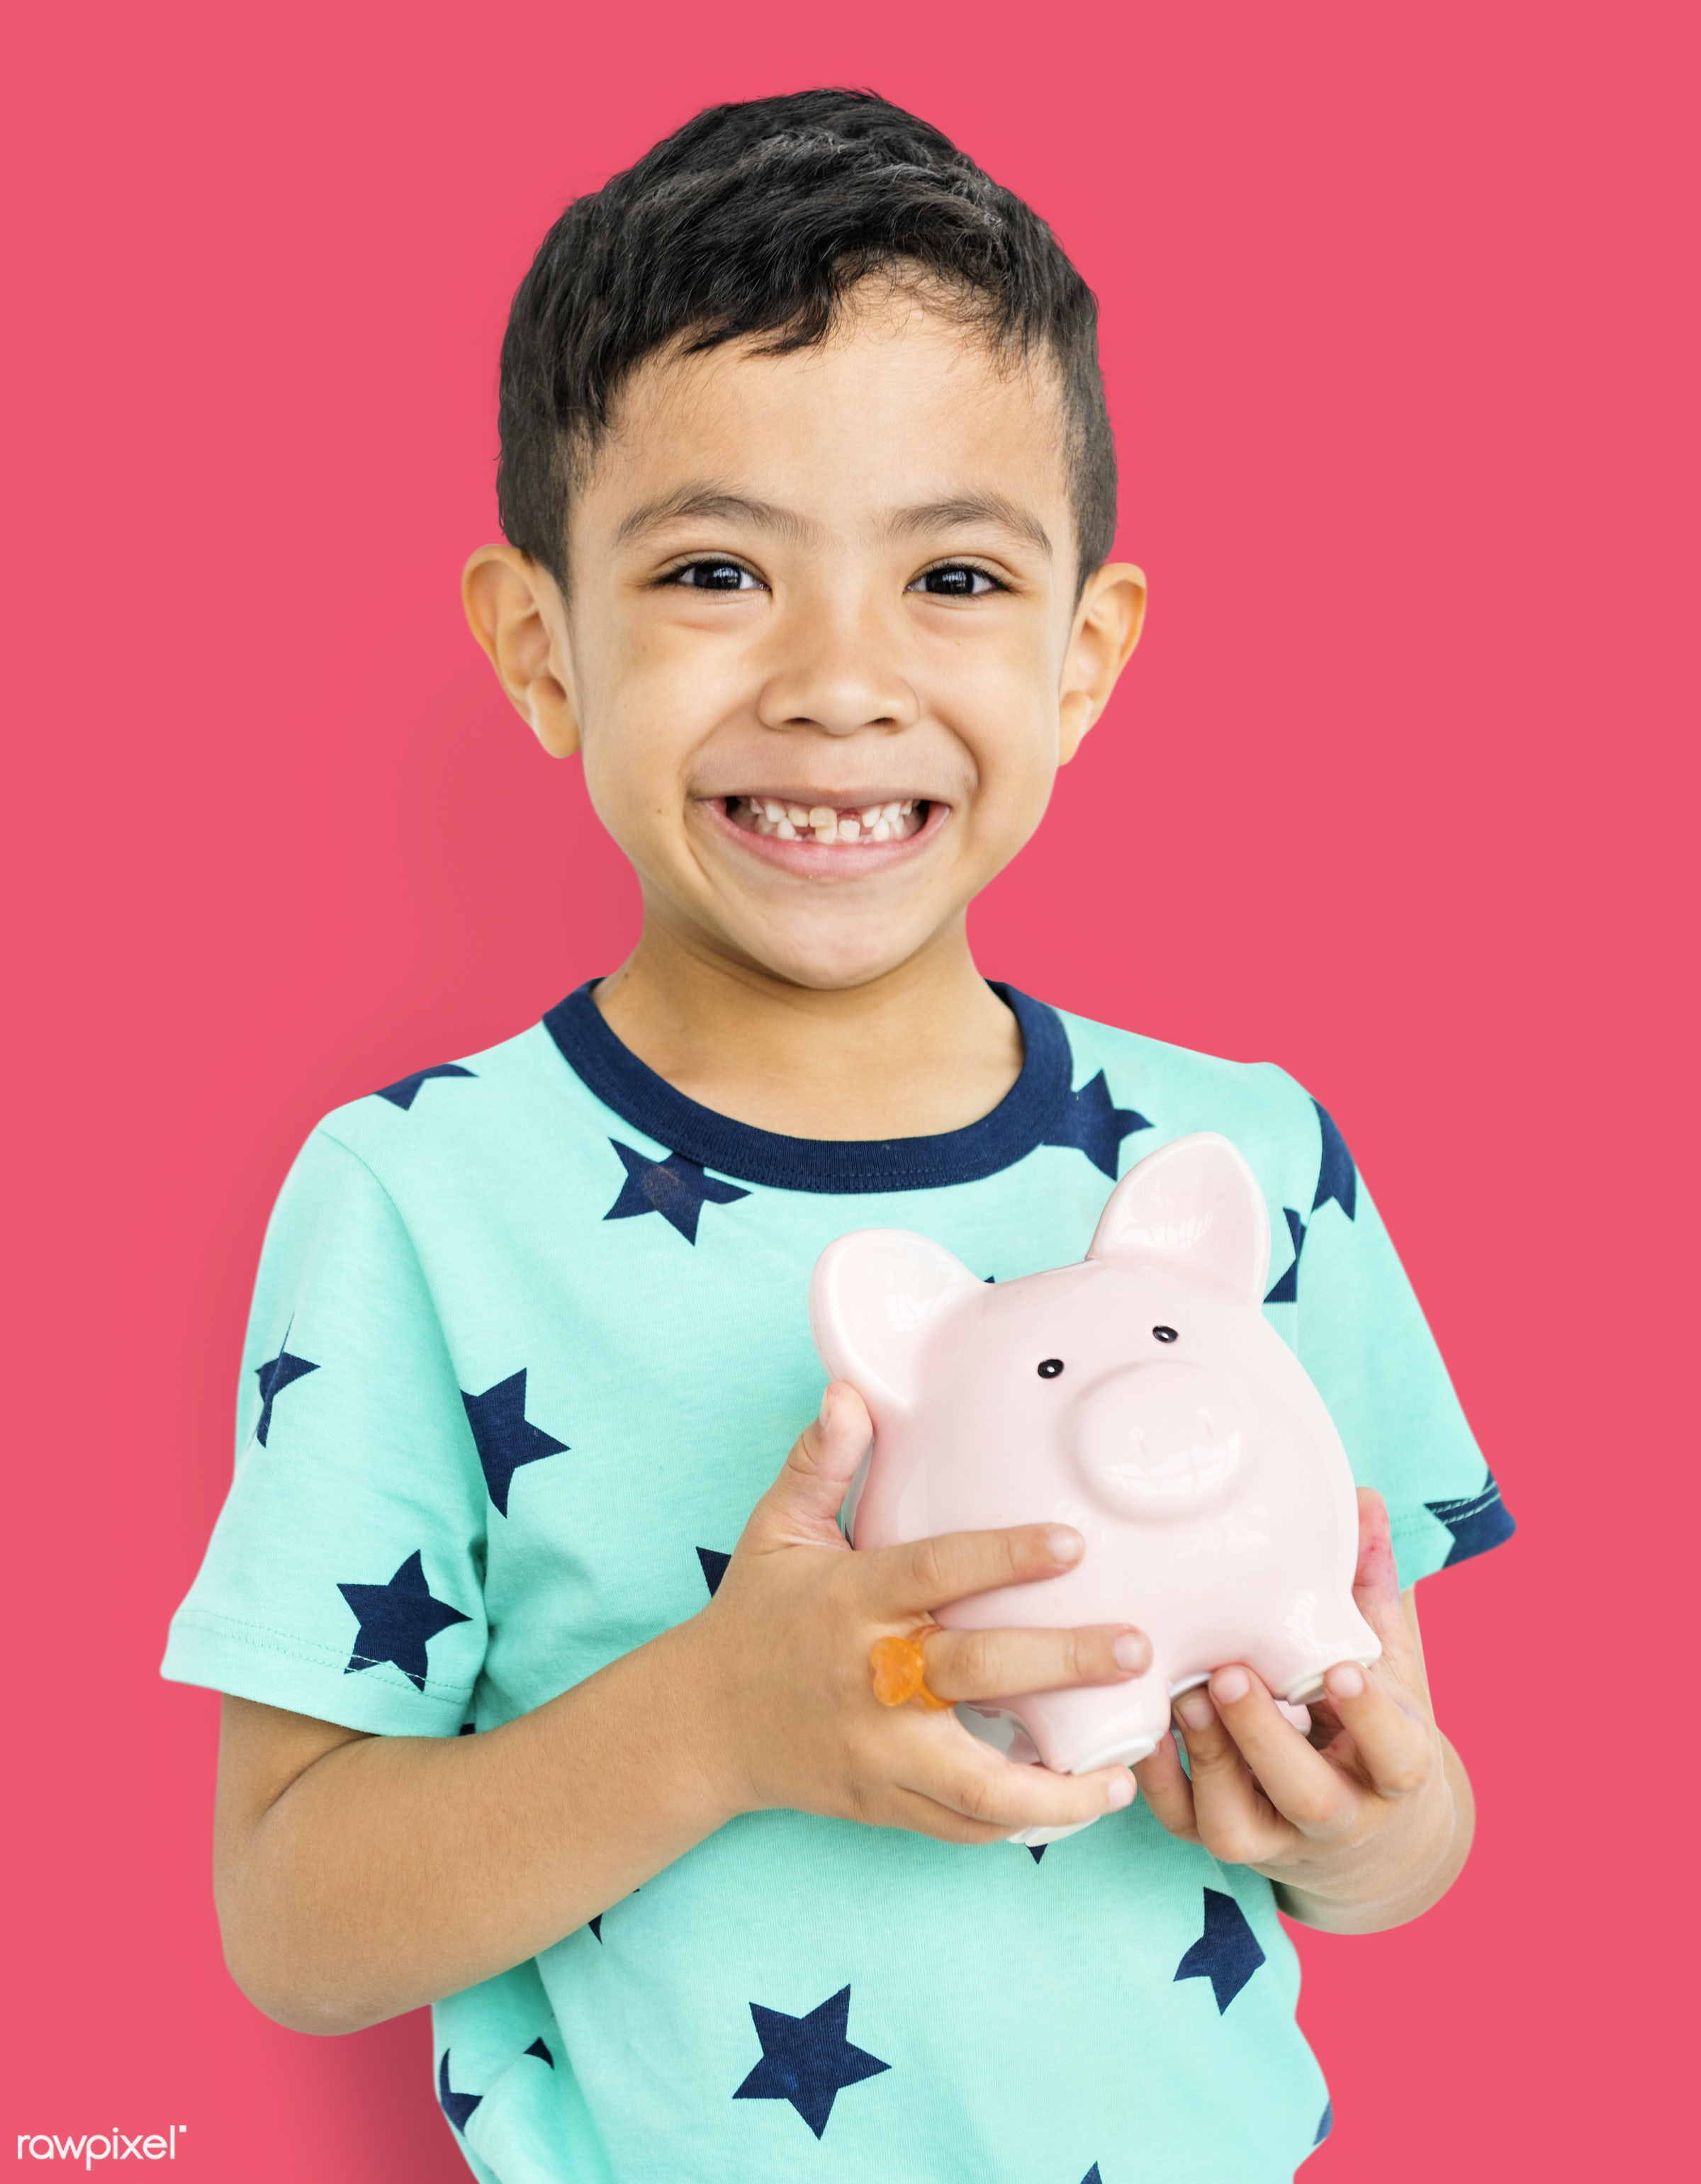 alone, boy, cheerful, child, children, isolated, kid, one, playful, smiling, young, youth, piggy bank, earning, money,...